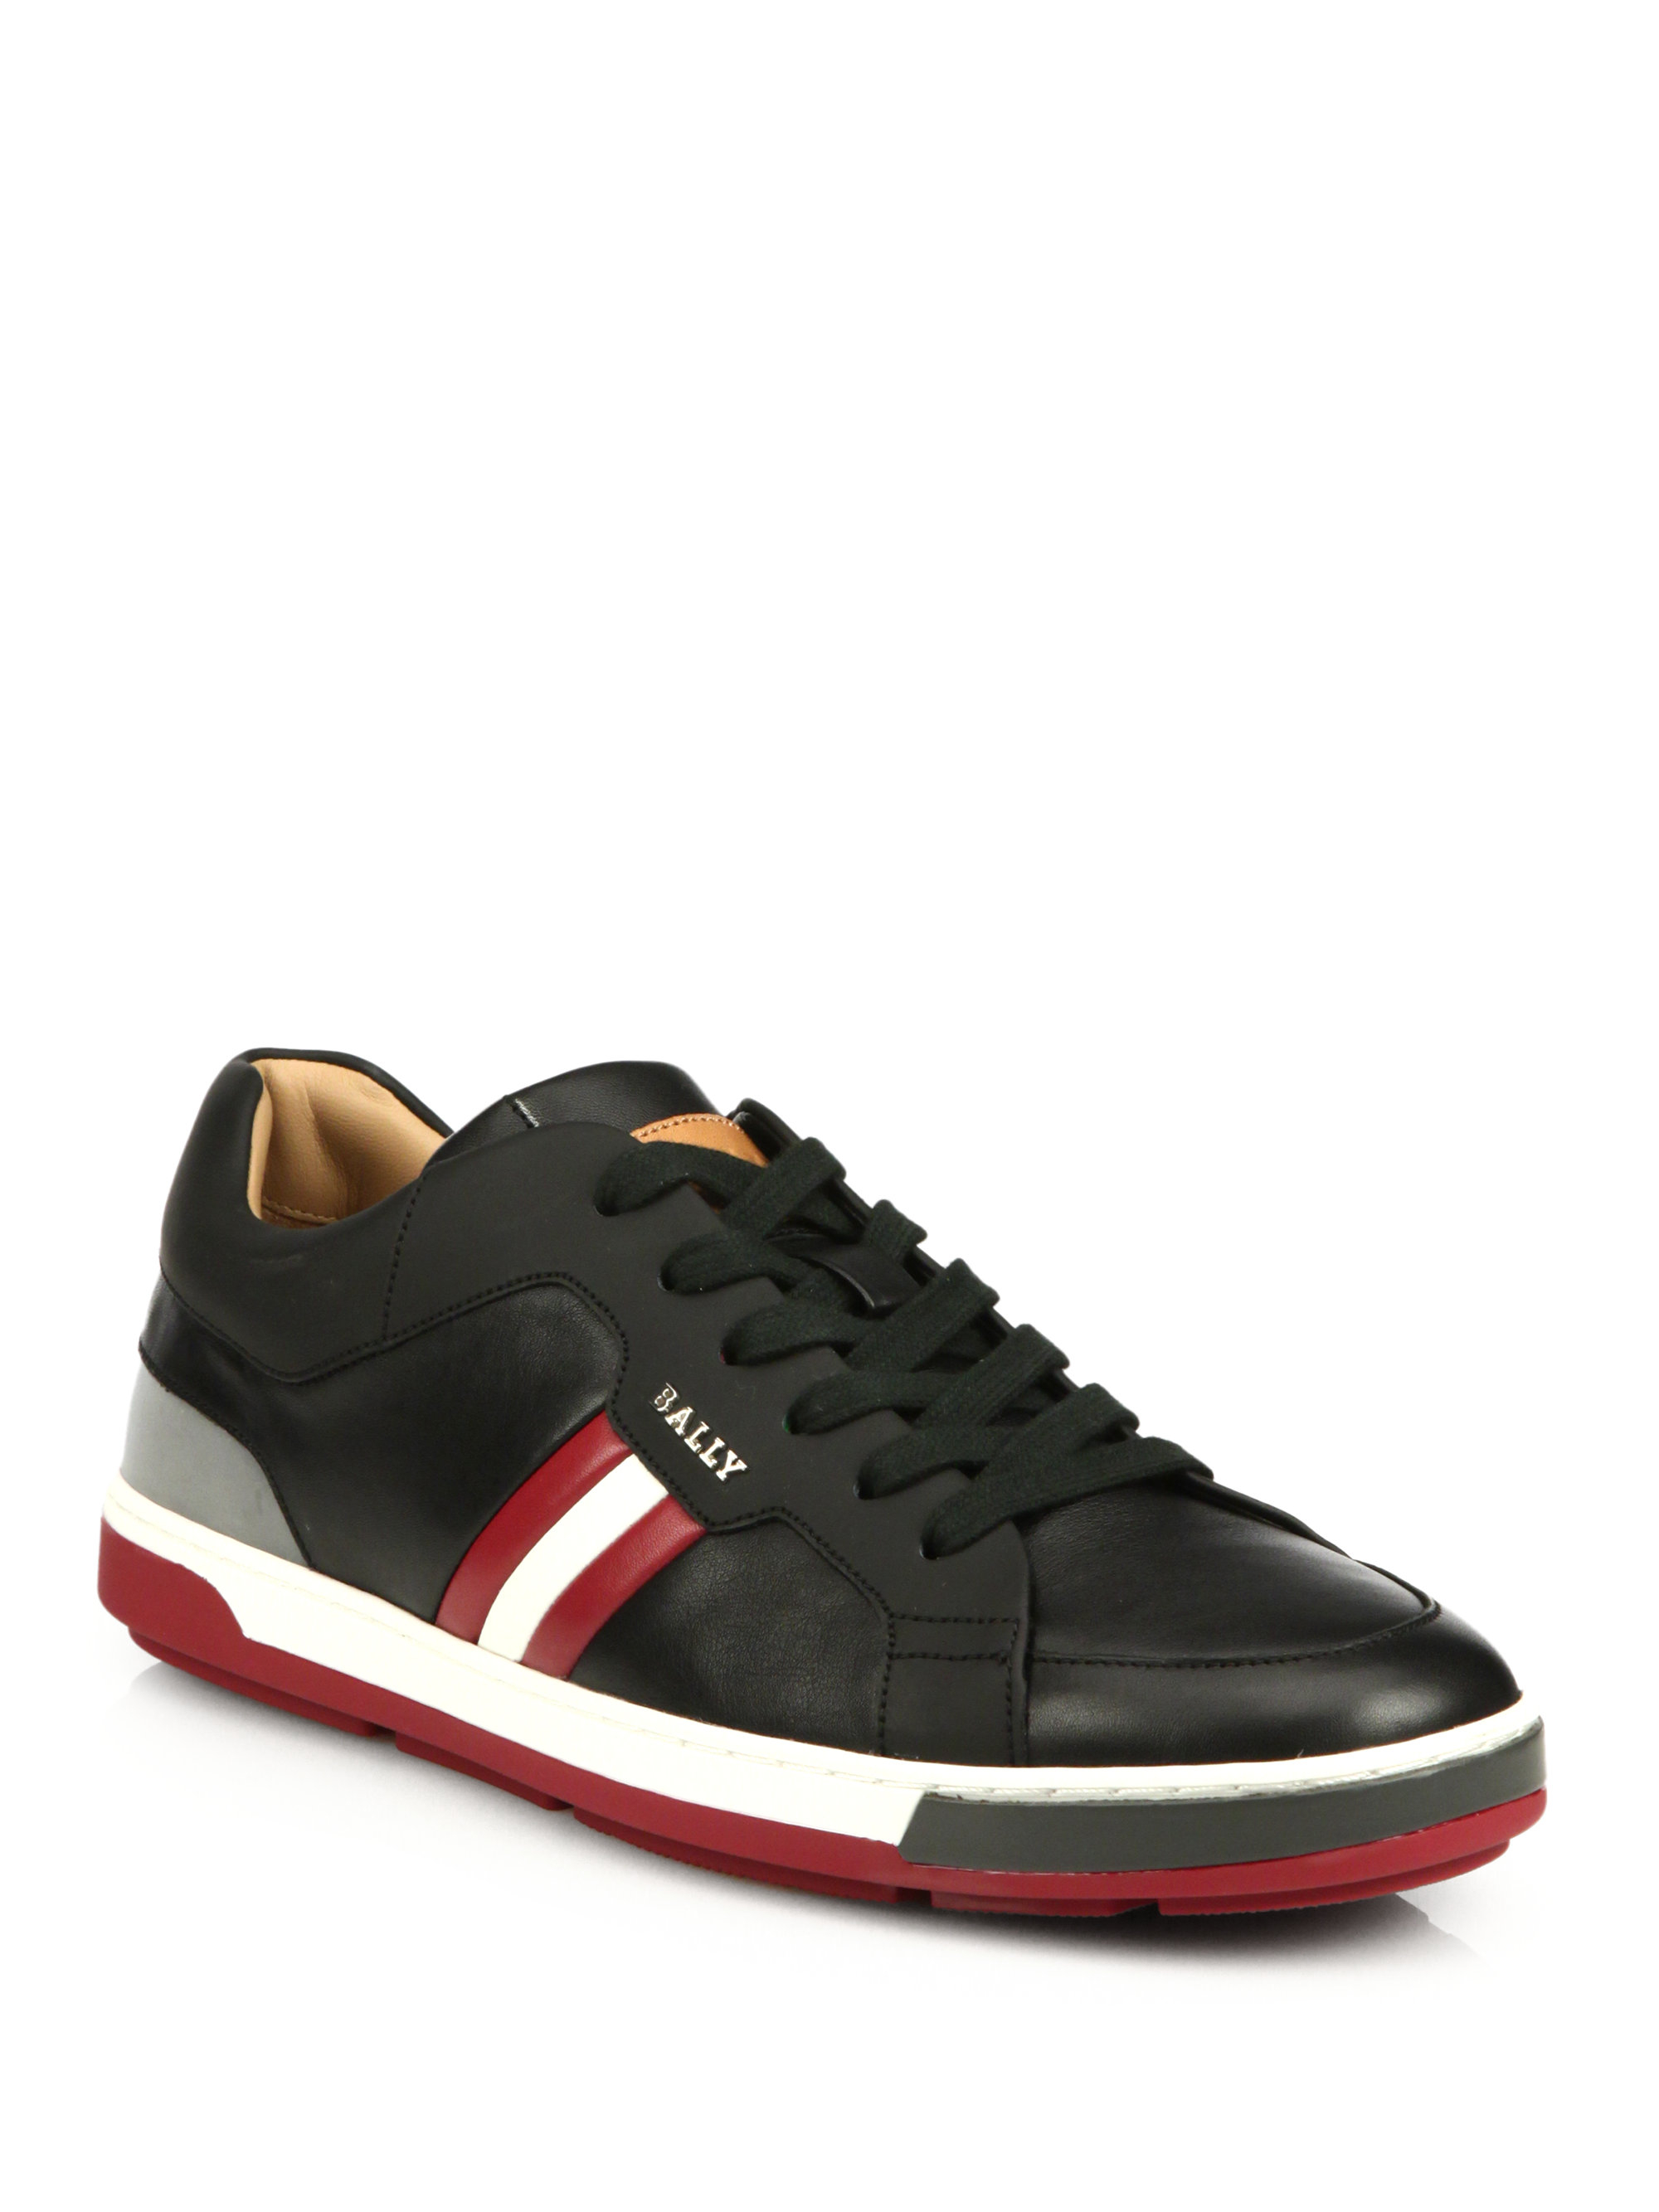 Bally Airone Leather Sneakers In Black For Men